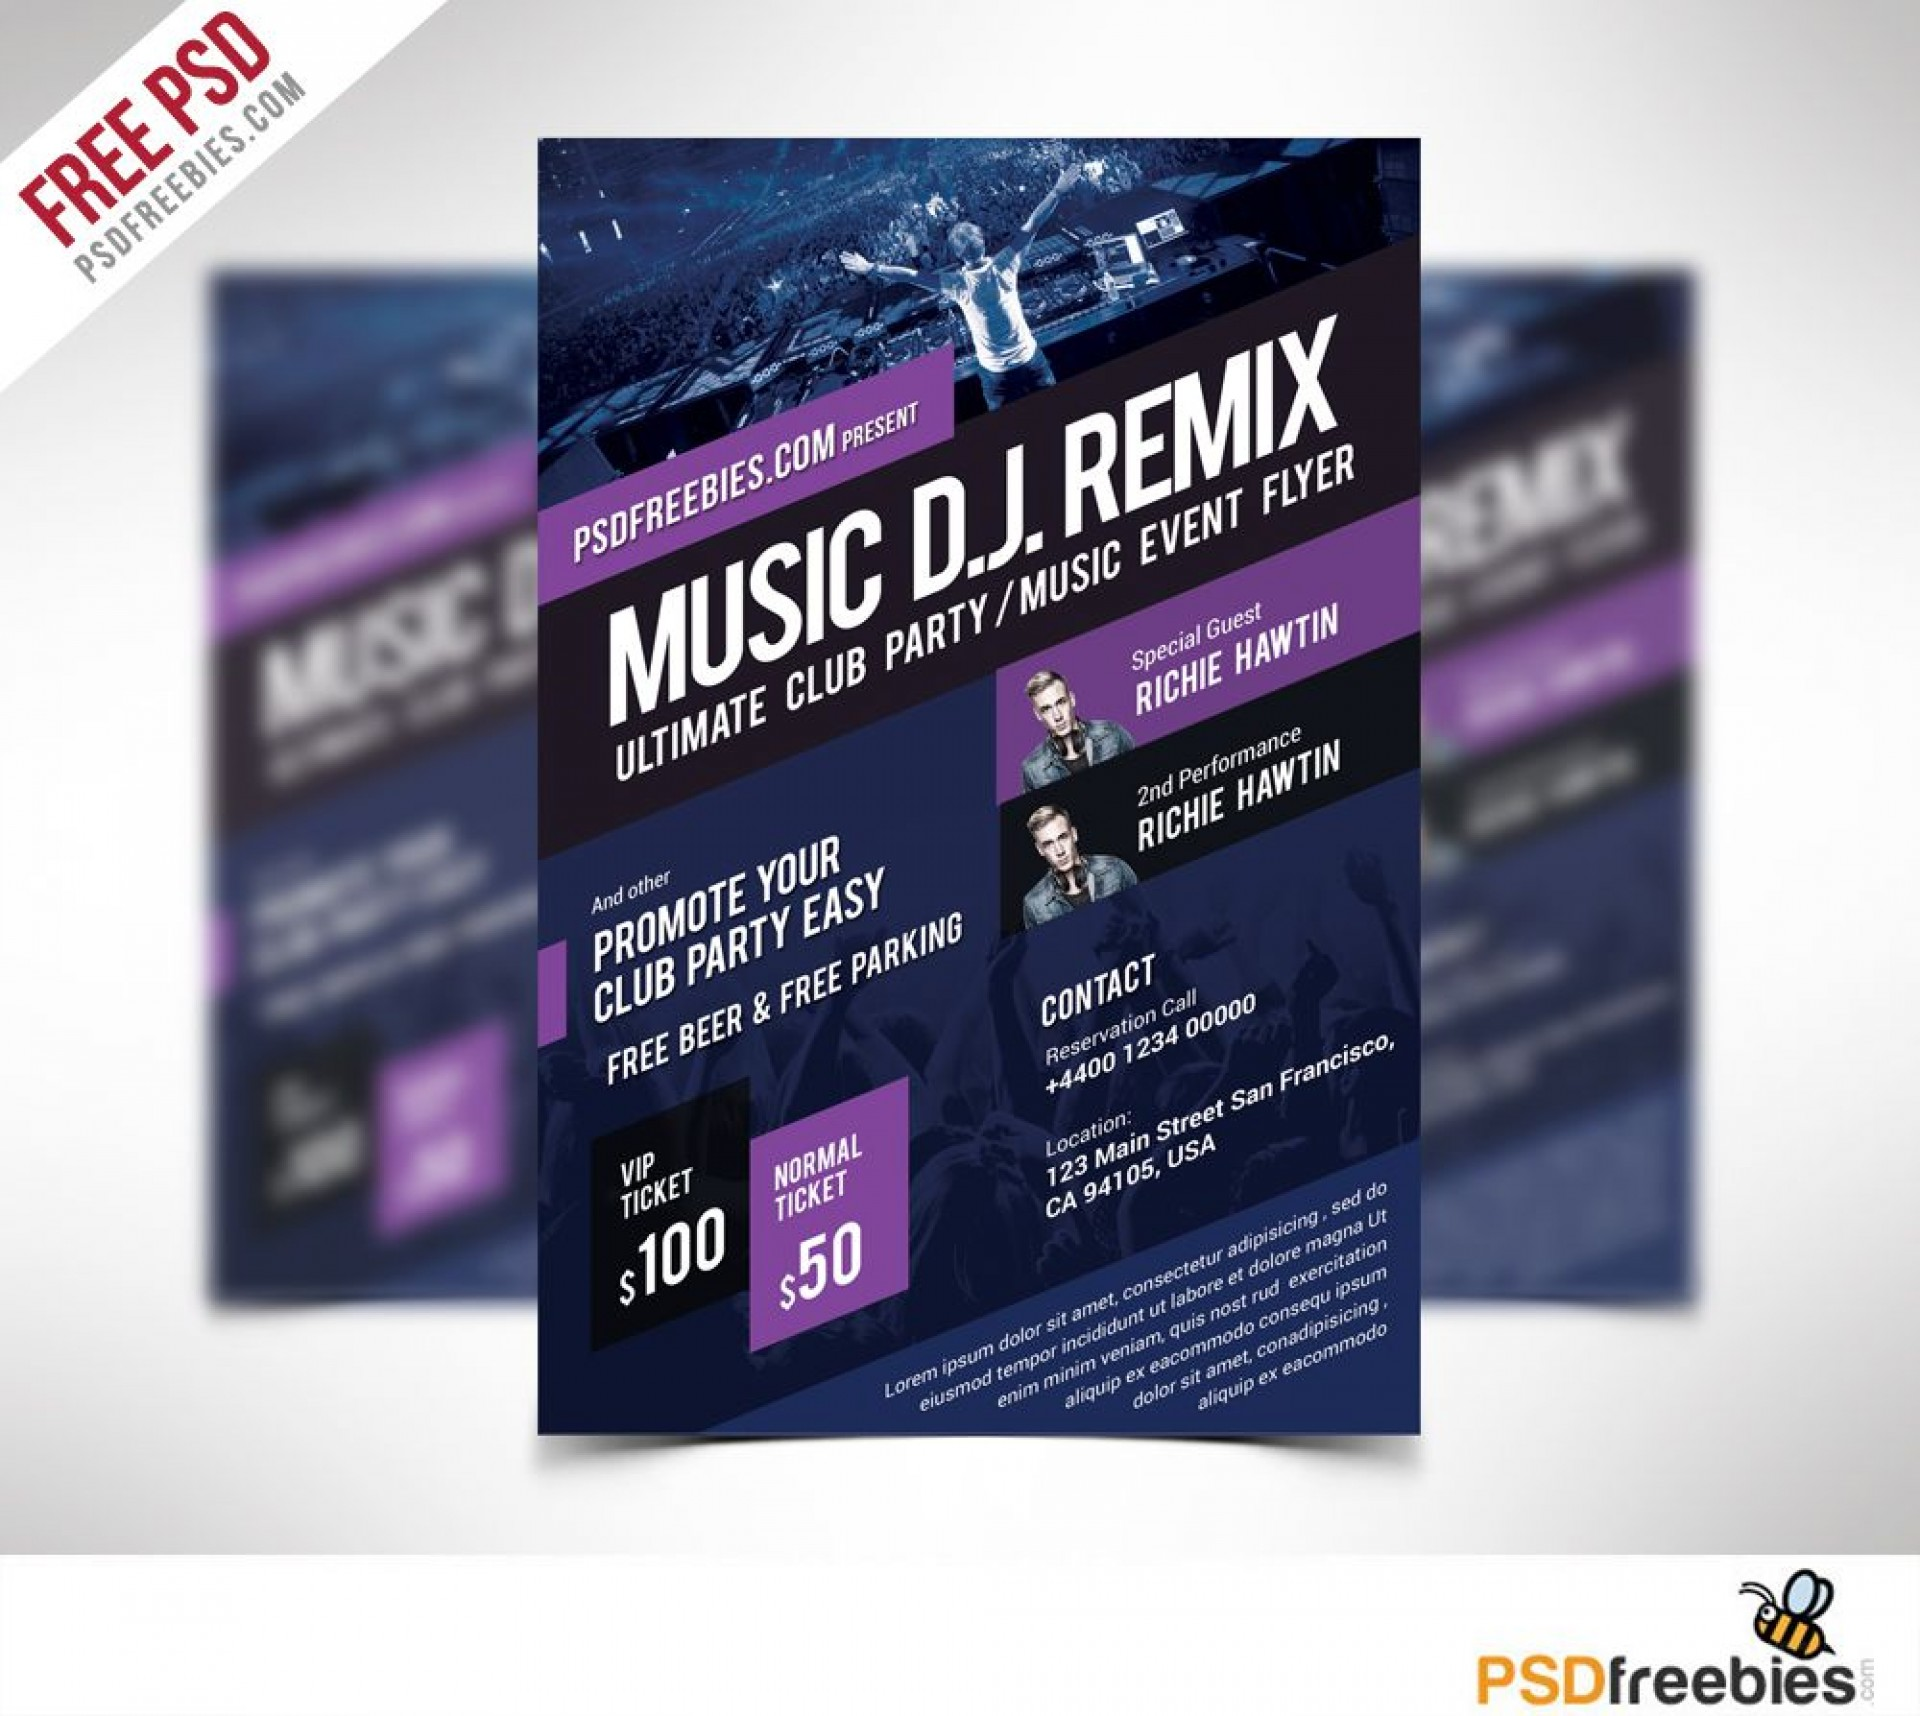 009 Rare Event Flyer Template Free Psd High Definition  Music Boxing1920